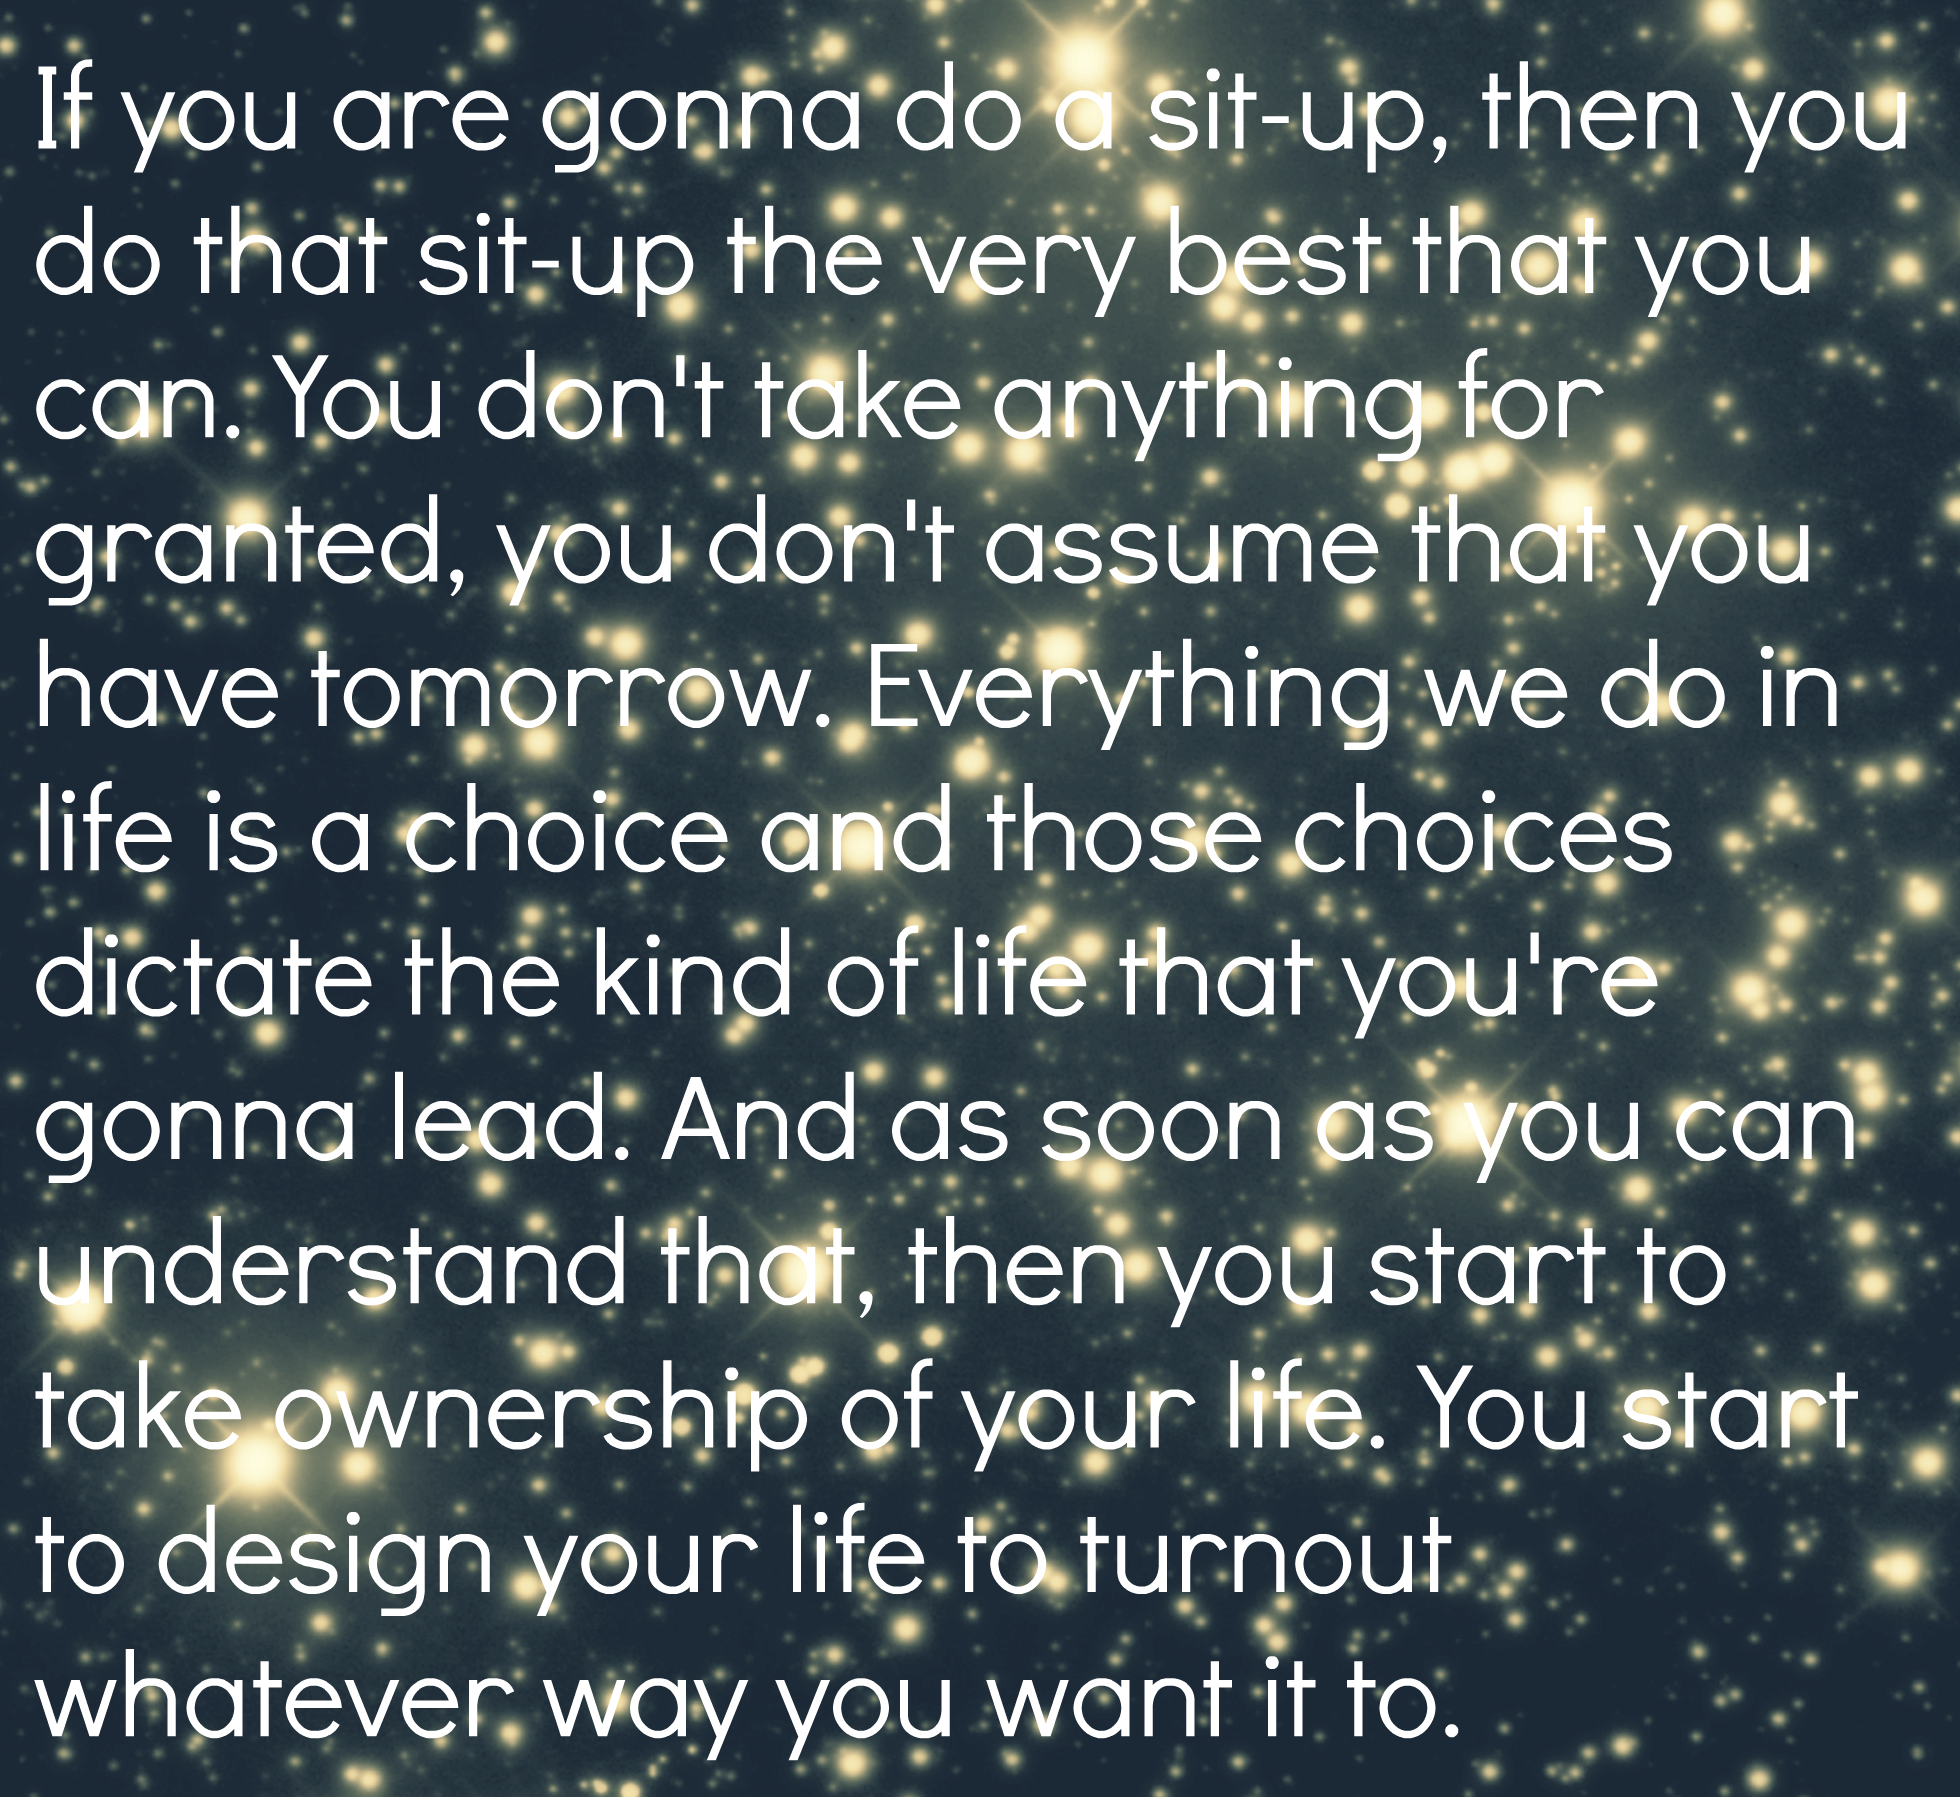 Awesome Motivational Speech From The Movie Full Out Inspirational Speeches Inspirational Quotes Motivational Speeches